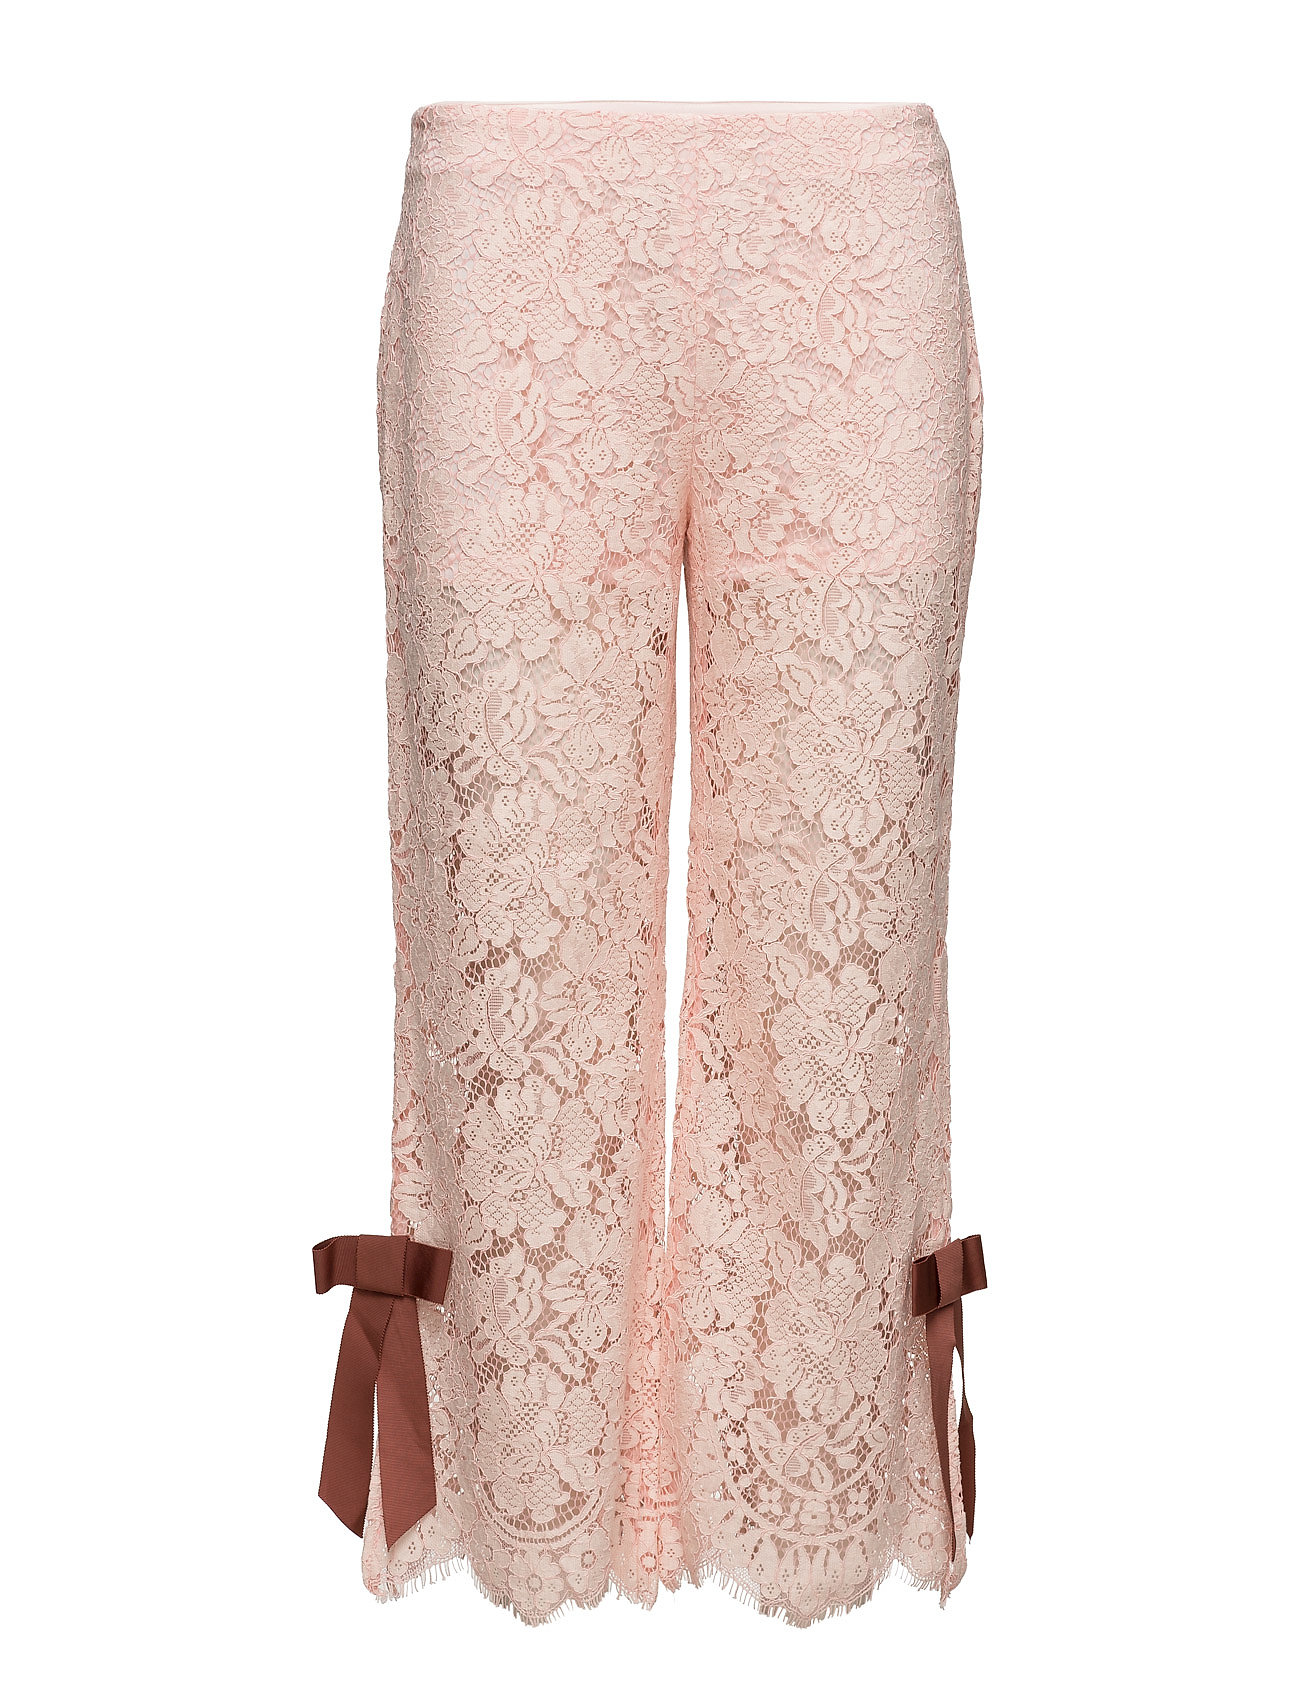 095a4c37 Ganni Duval Lace (Cloud Pink), (71.70 €) | Large selection of outlet ...